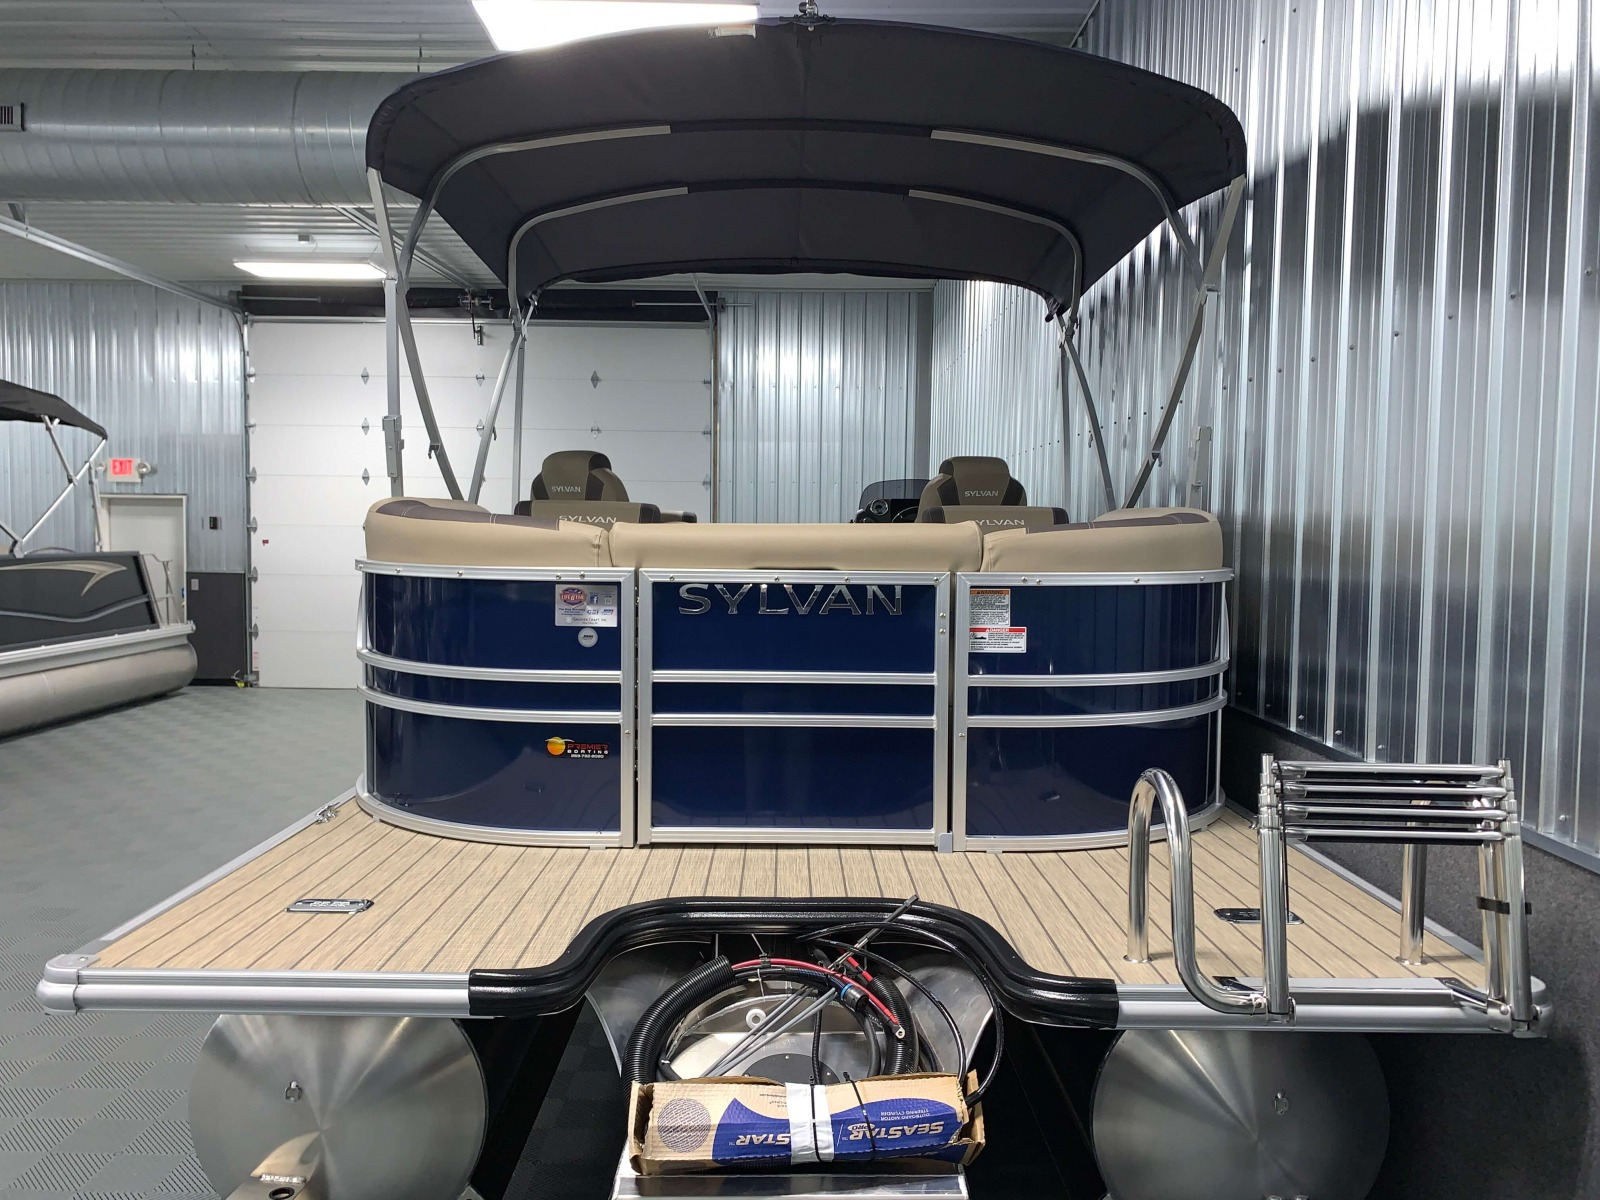 Rear Swim Deck of the 2021 Sylvan L3 LZ Tritoon Boat